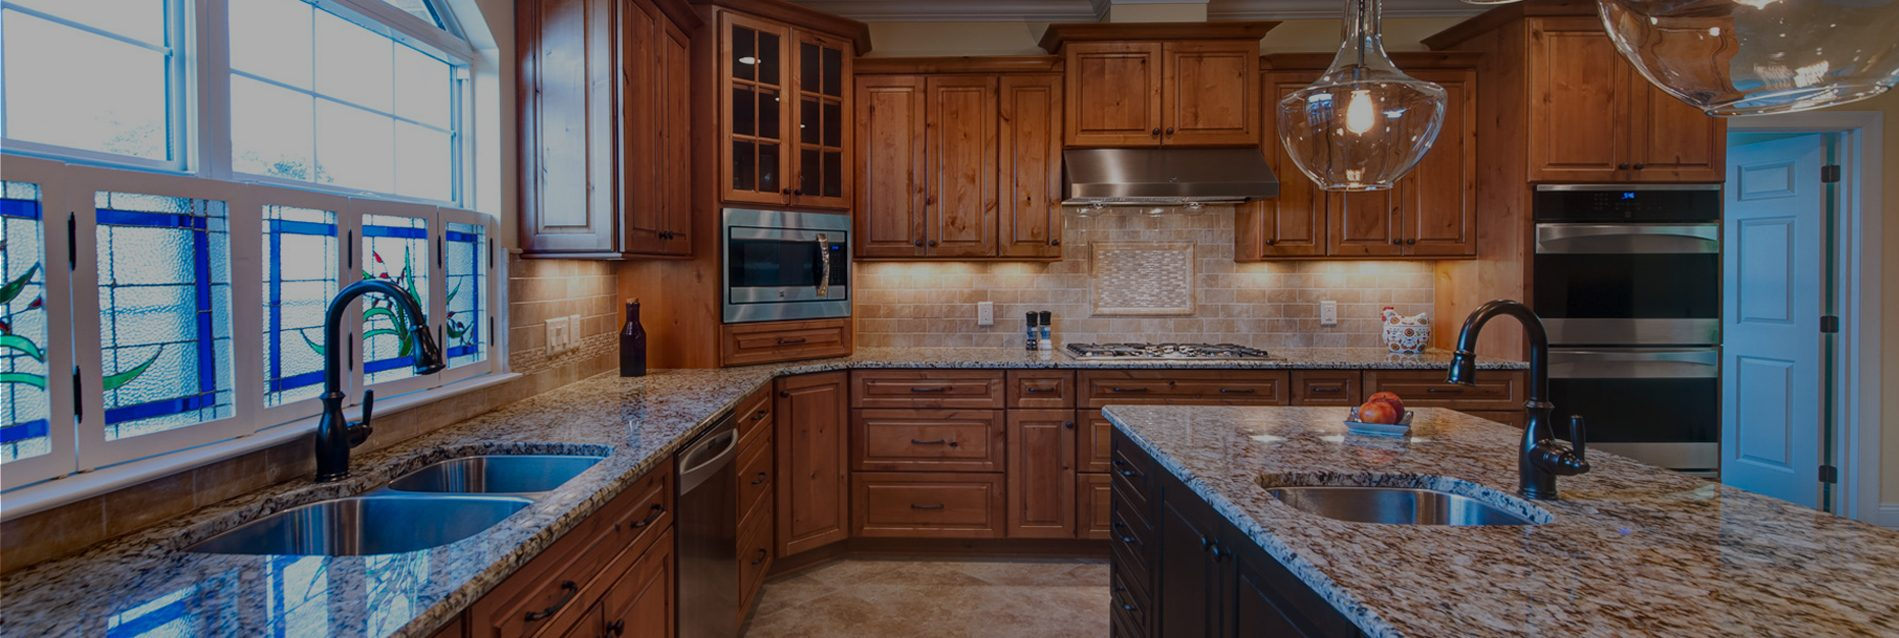 Home interior kitchen sink and countertops